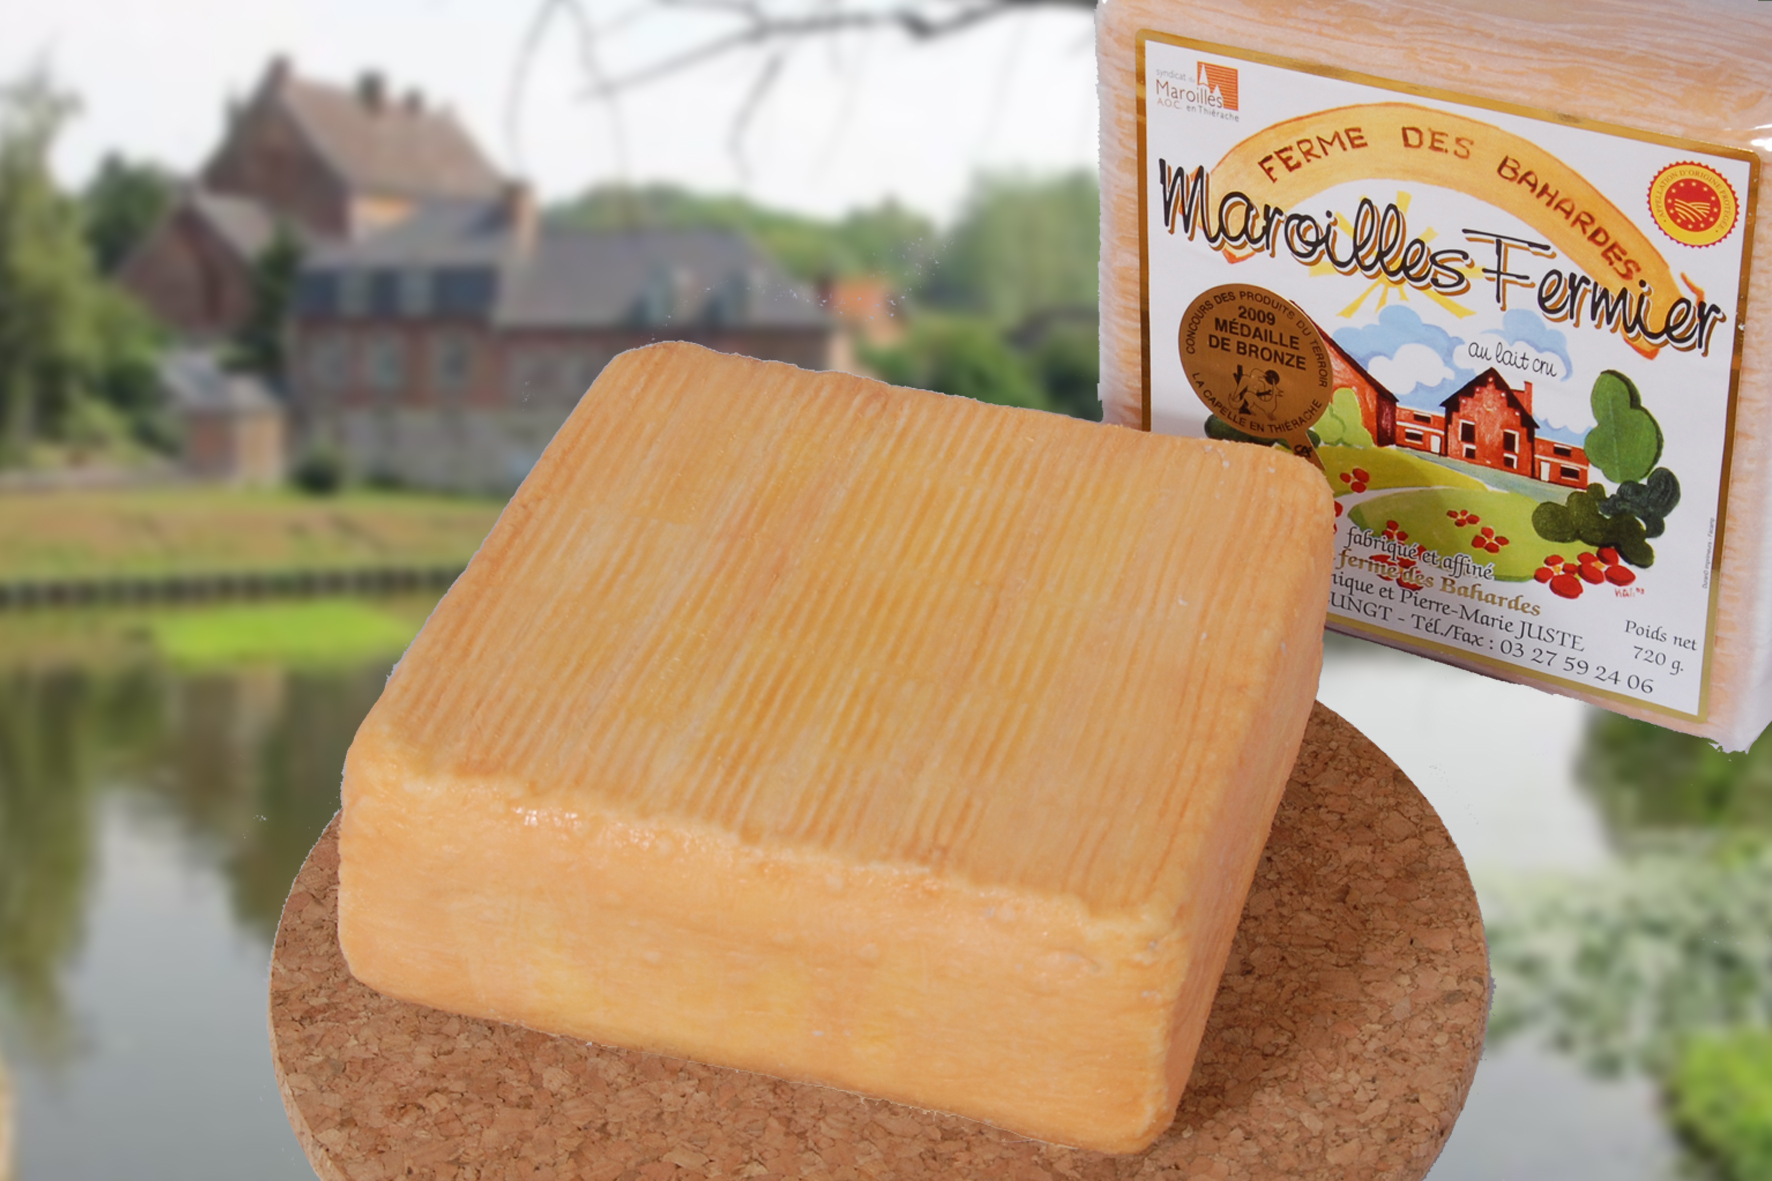 Maroilles (fromage)